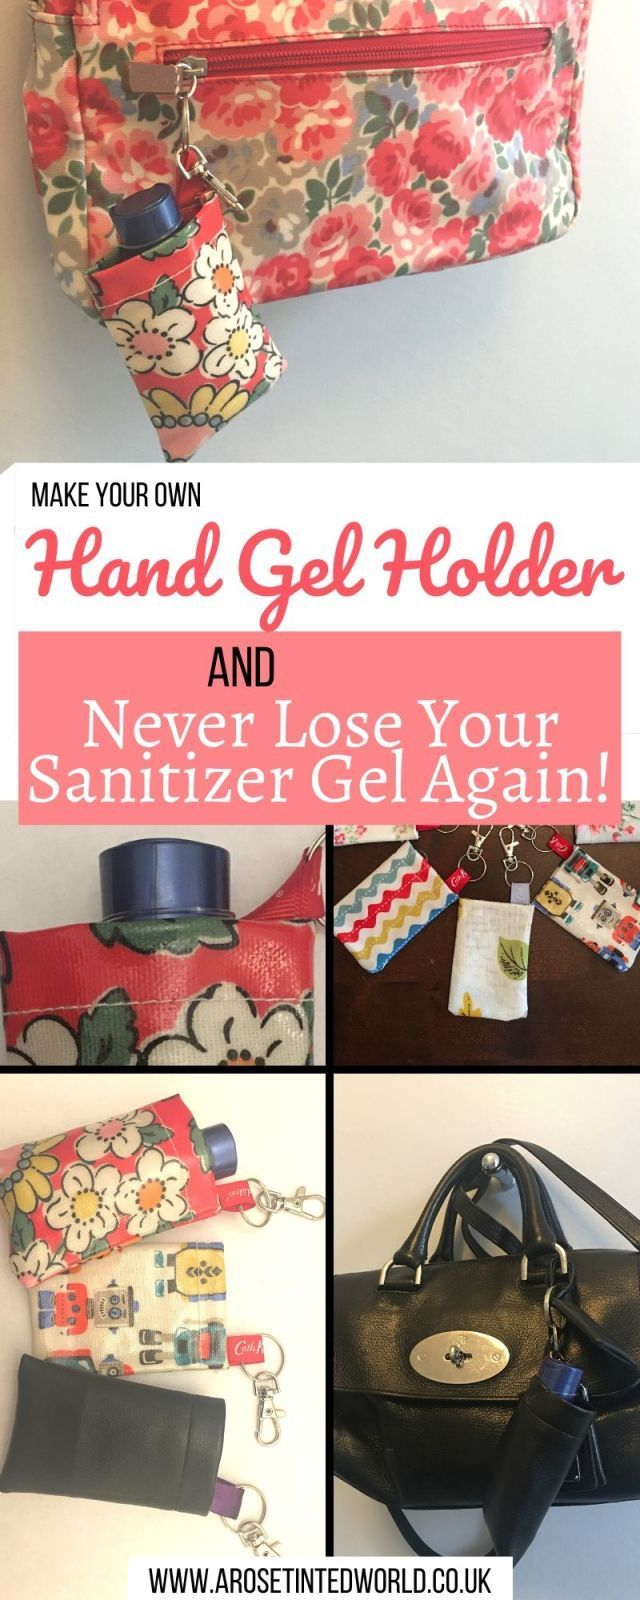 Make A Hand Sanitiser Gel Holder In 5 Minutes